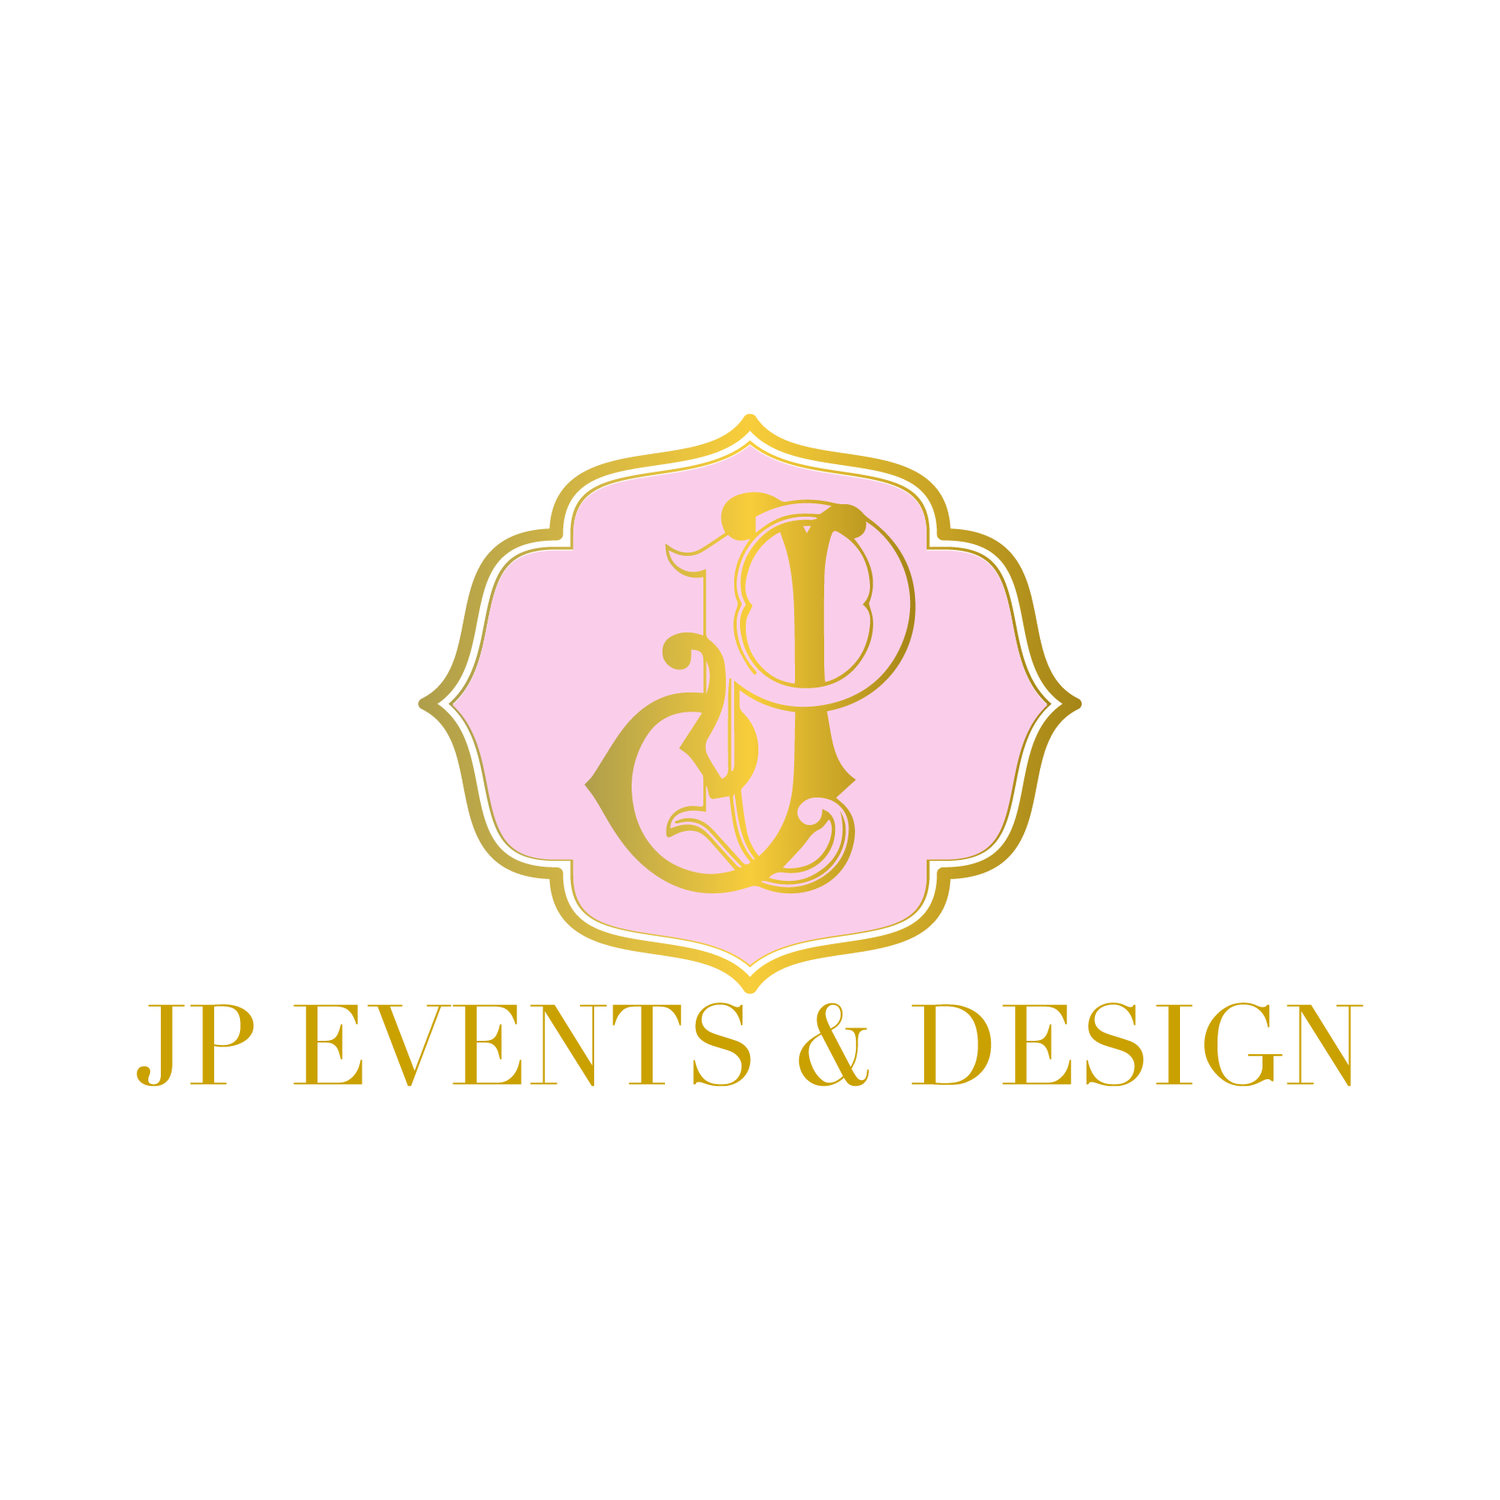 JP EVENTS & DESIGN